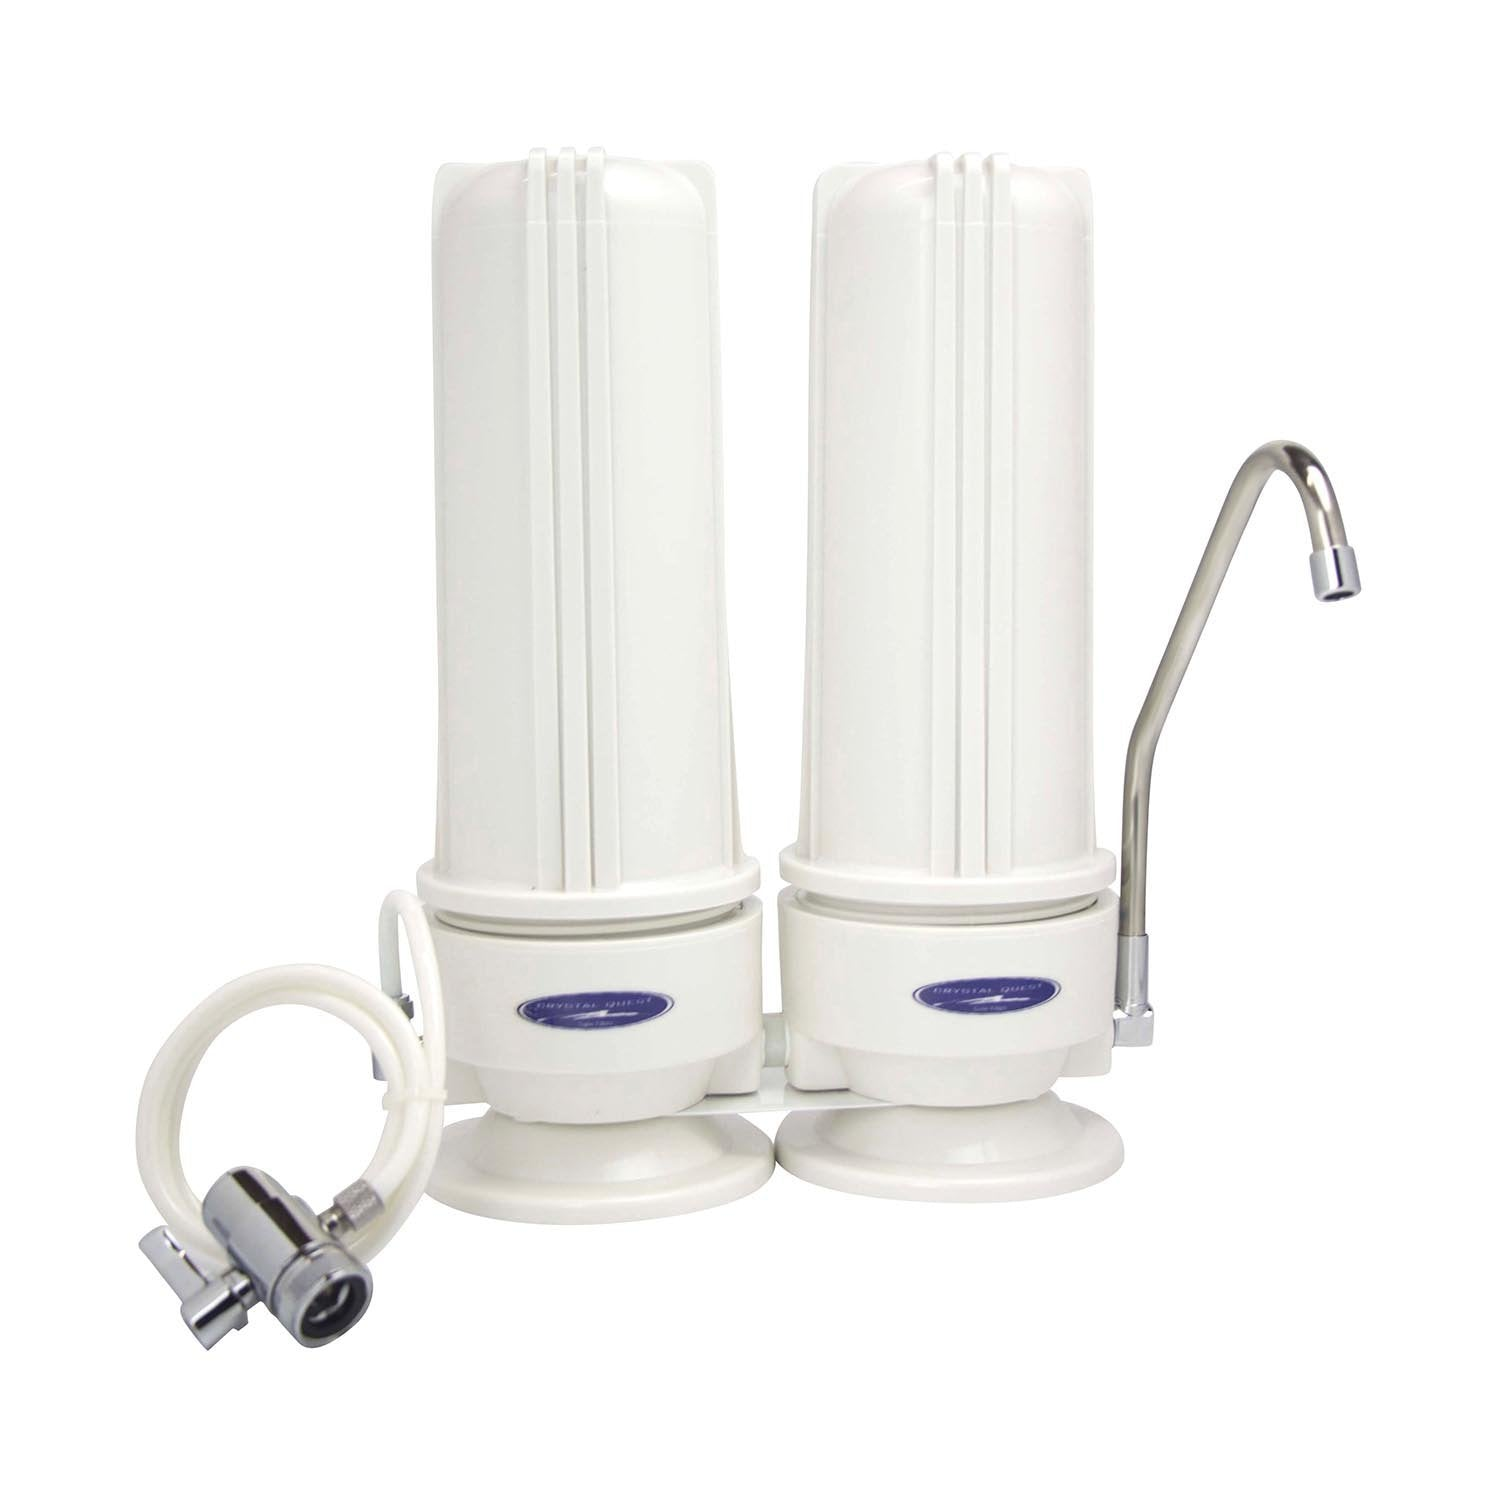 aq water drinking countertop reviews aquasana countertops white systems attached filter